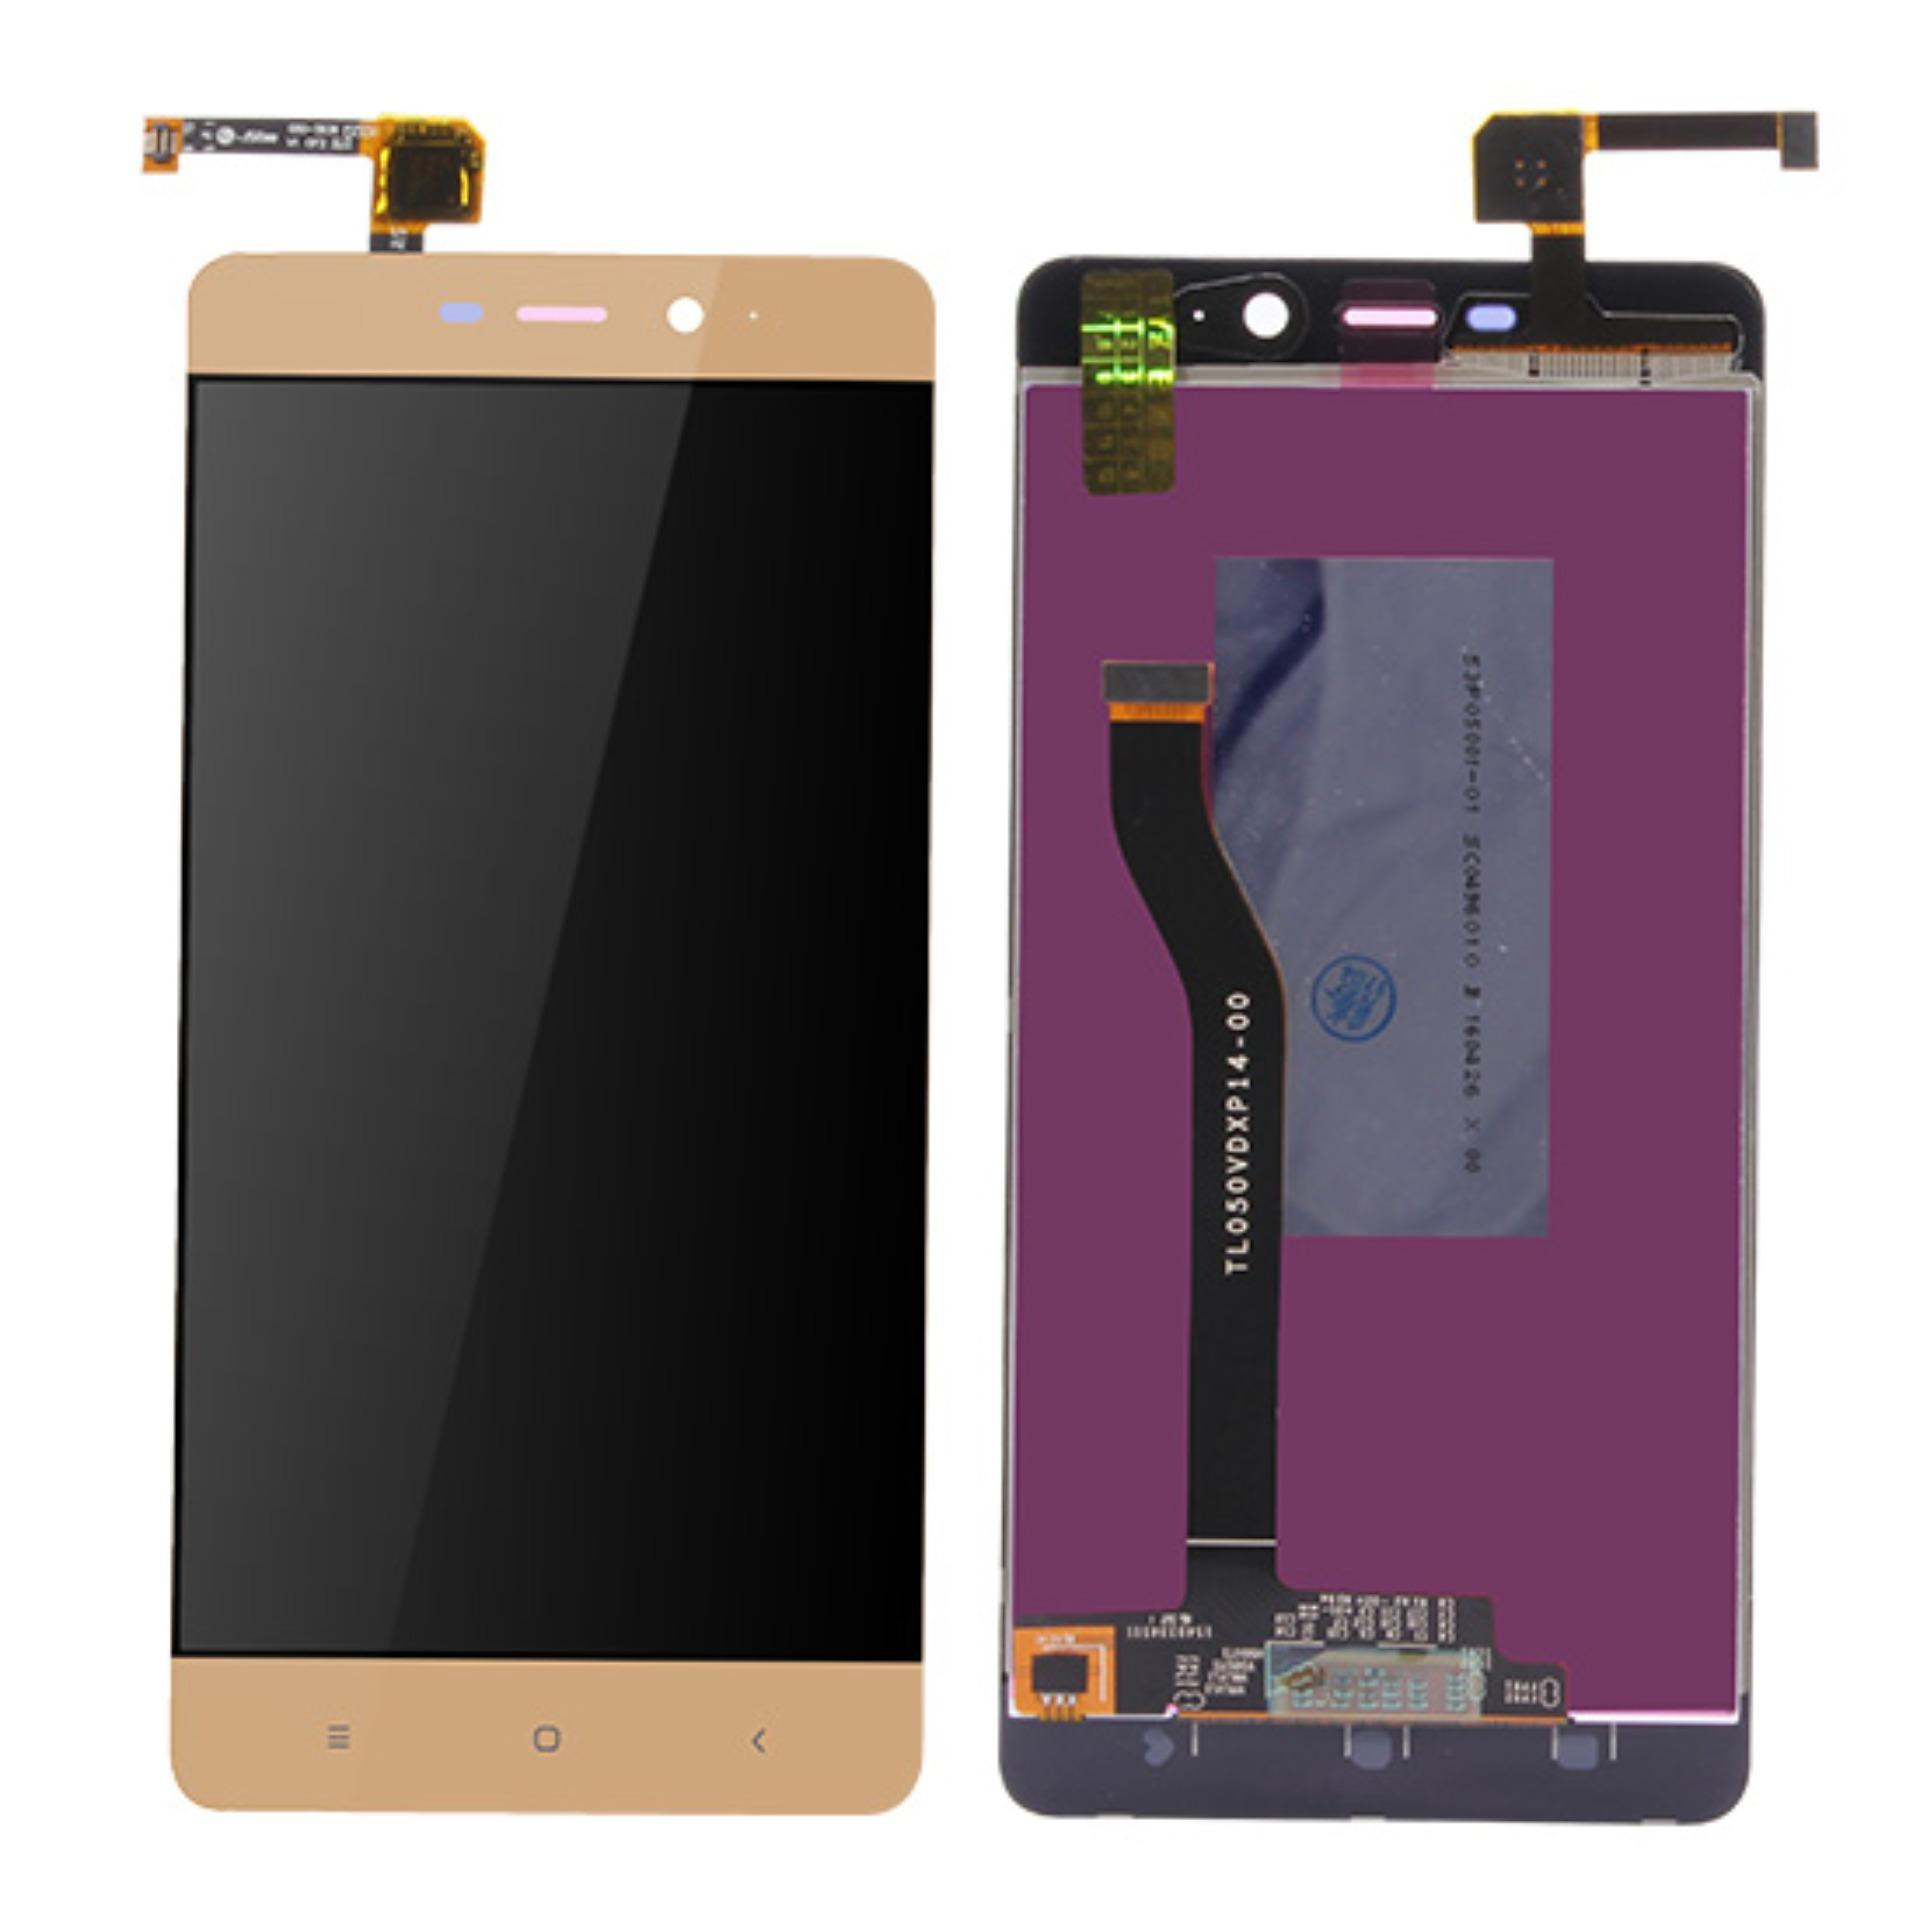 New For Xiaomi Redmi 4 Pro Prime Lcd Display Screen Touch Screen Digitizer Assembly 5 Inch Replacement Repair Parts Intl